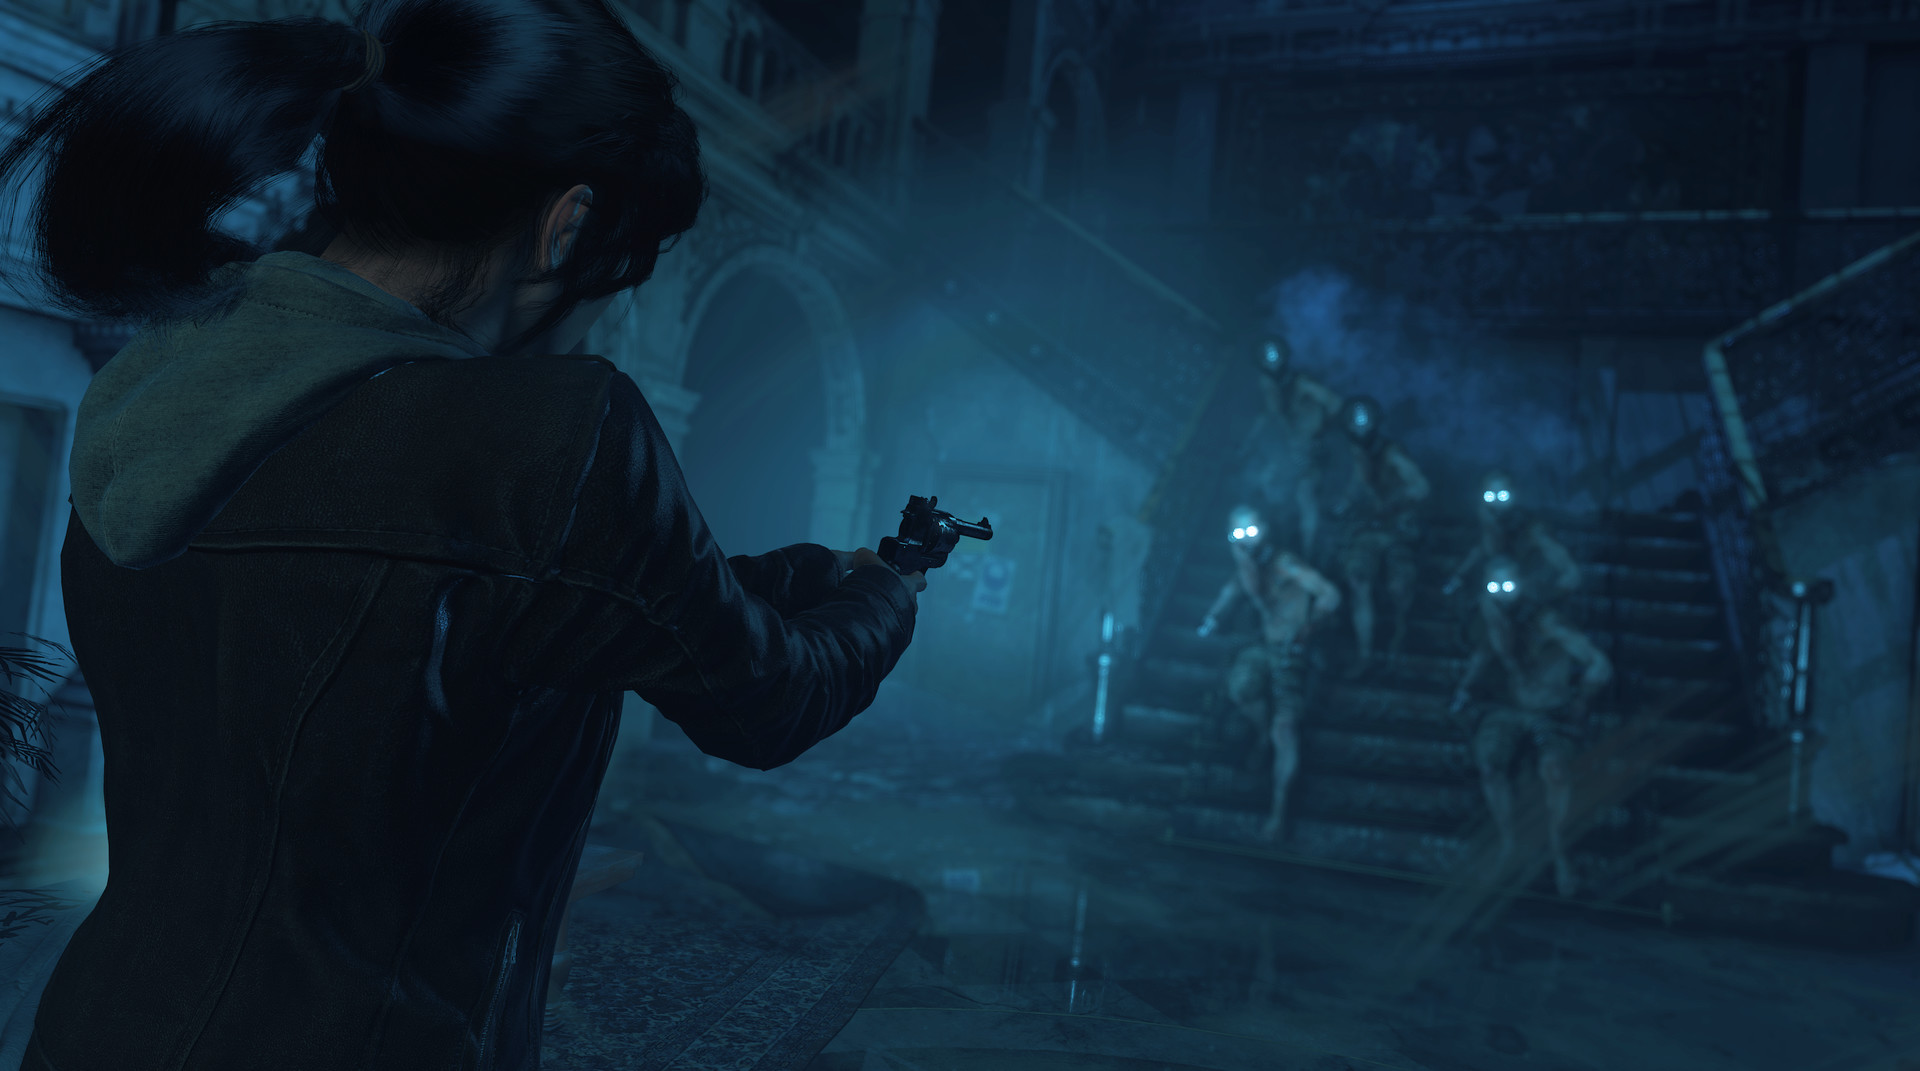 free download rise of the tomb raider 20 year celebration cracked by cpy include all dlc and latest update eng only full repack version cracked copiapop diskokosmiko